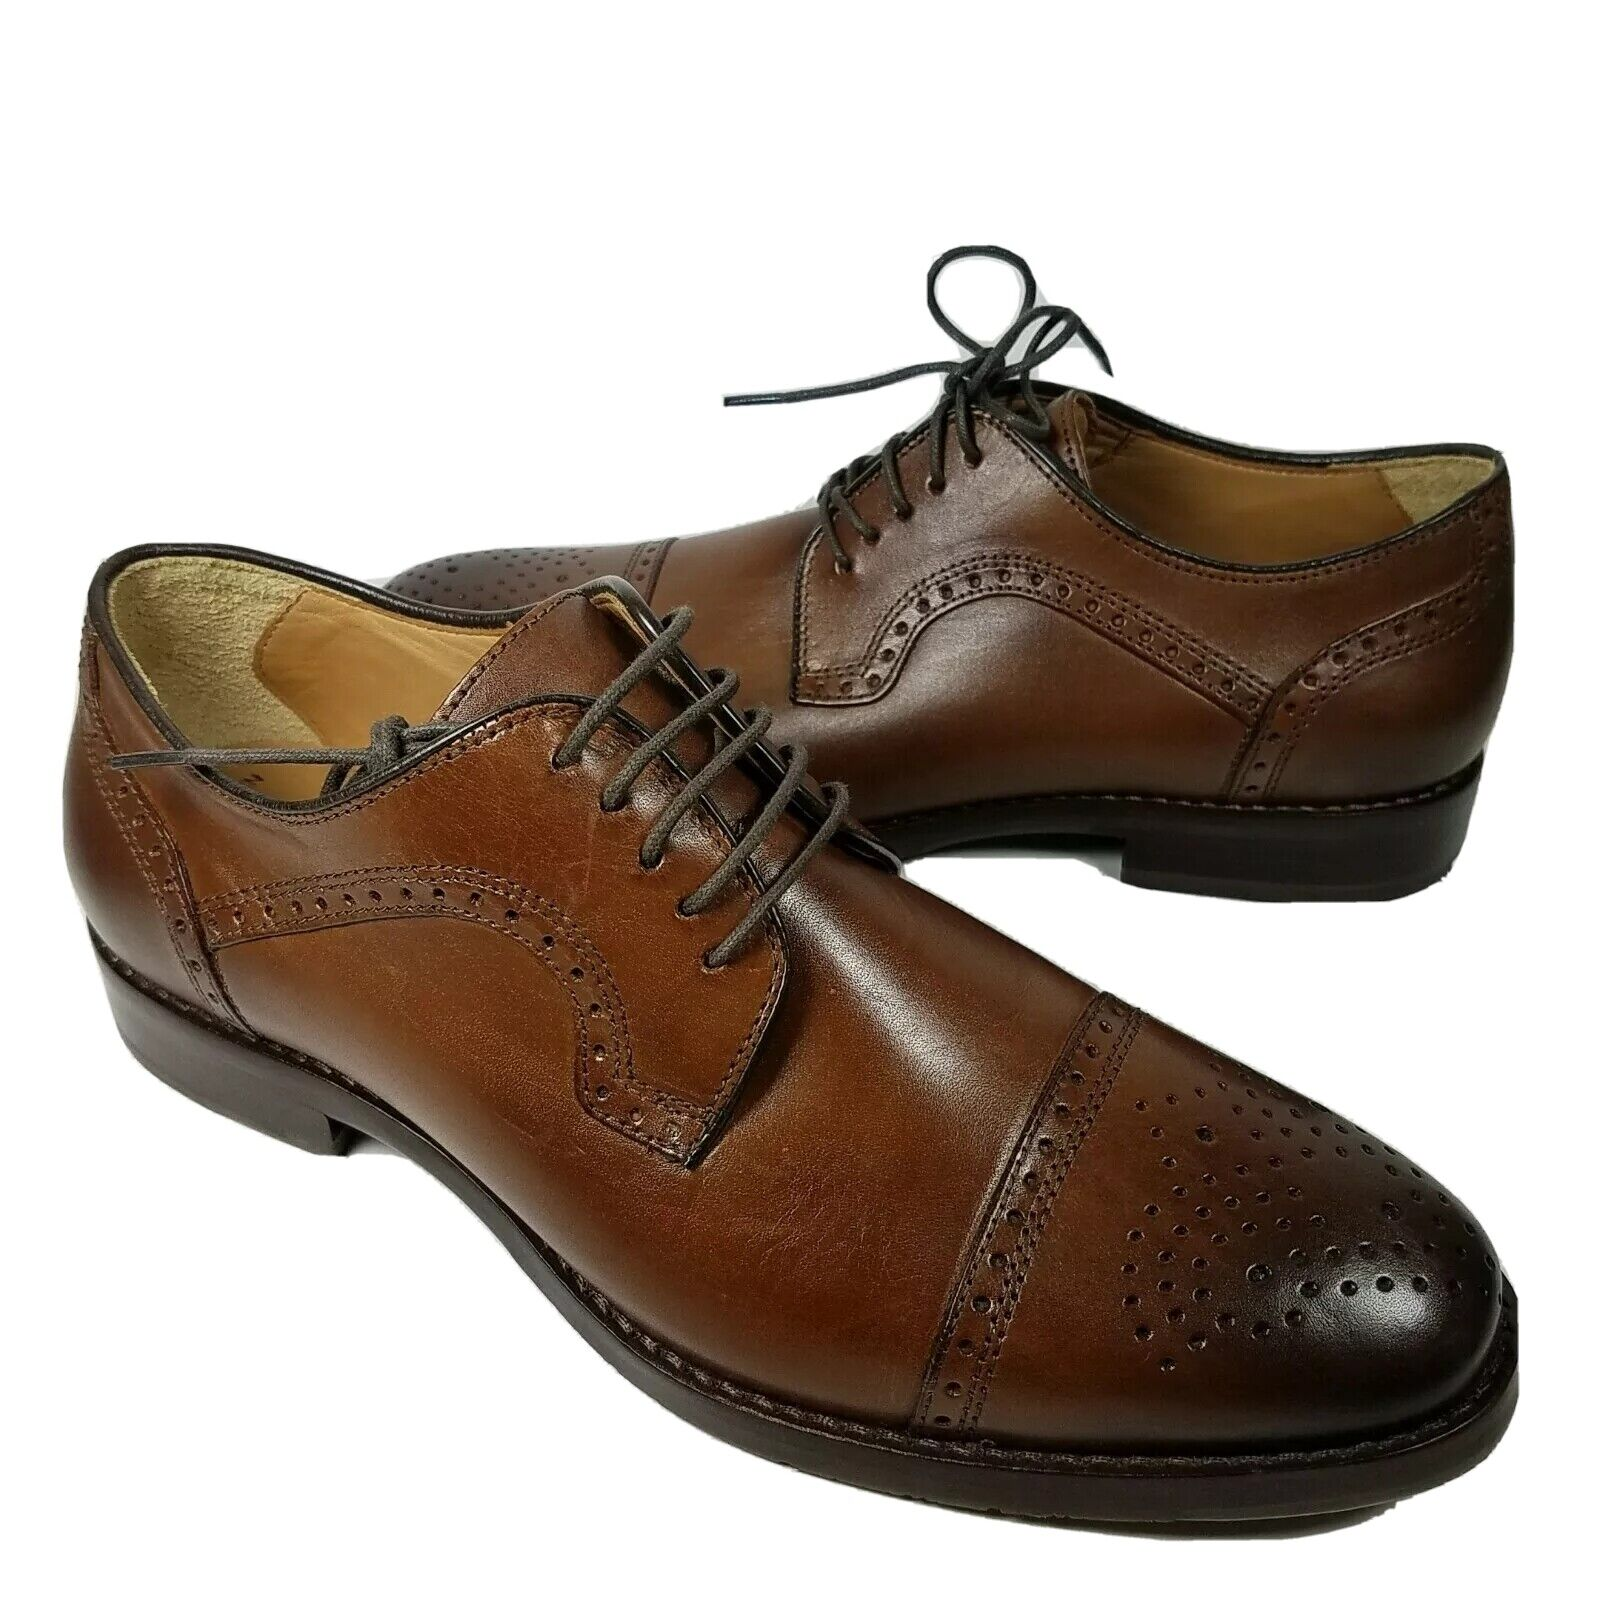 Johnston & Murphy Mens shoes oxfords Halford brown leather Cap-Toe sz 8 new